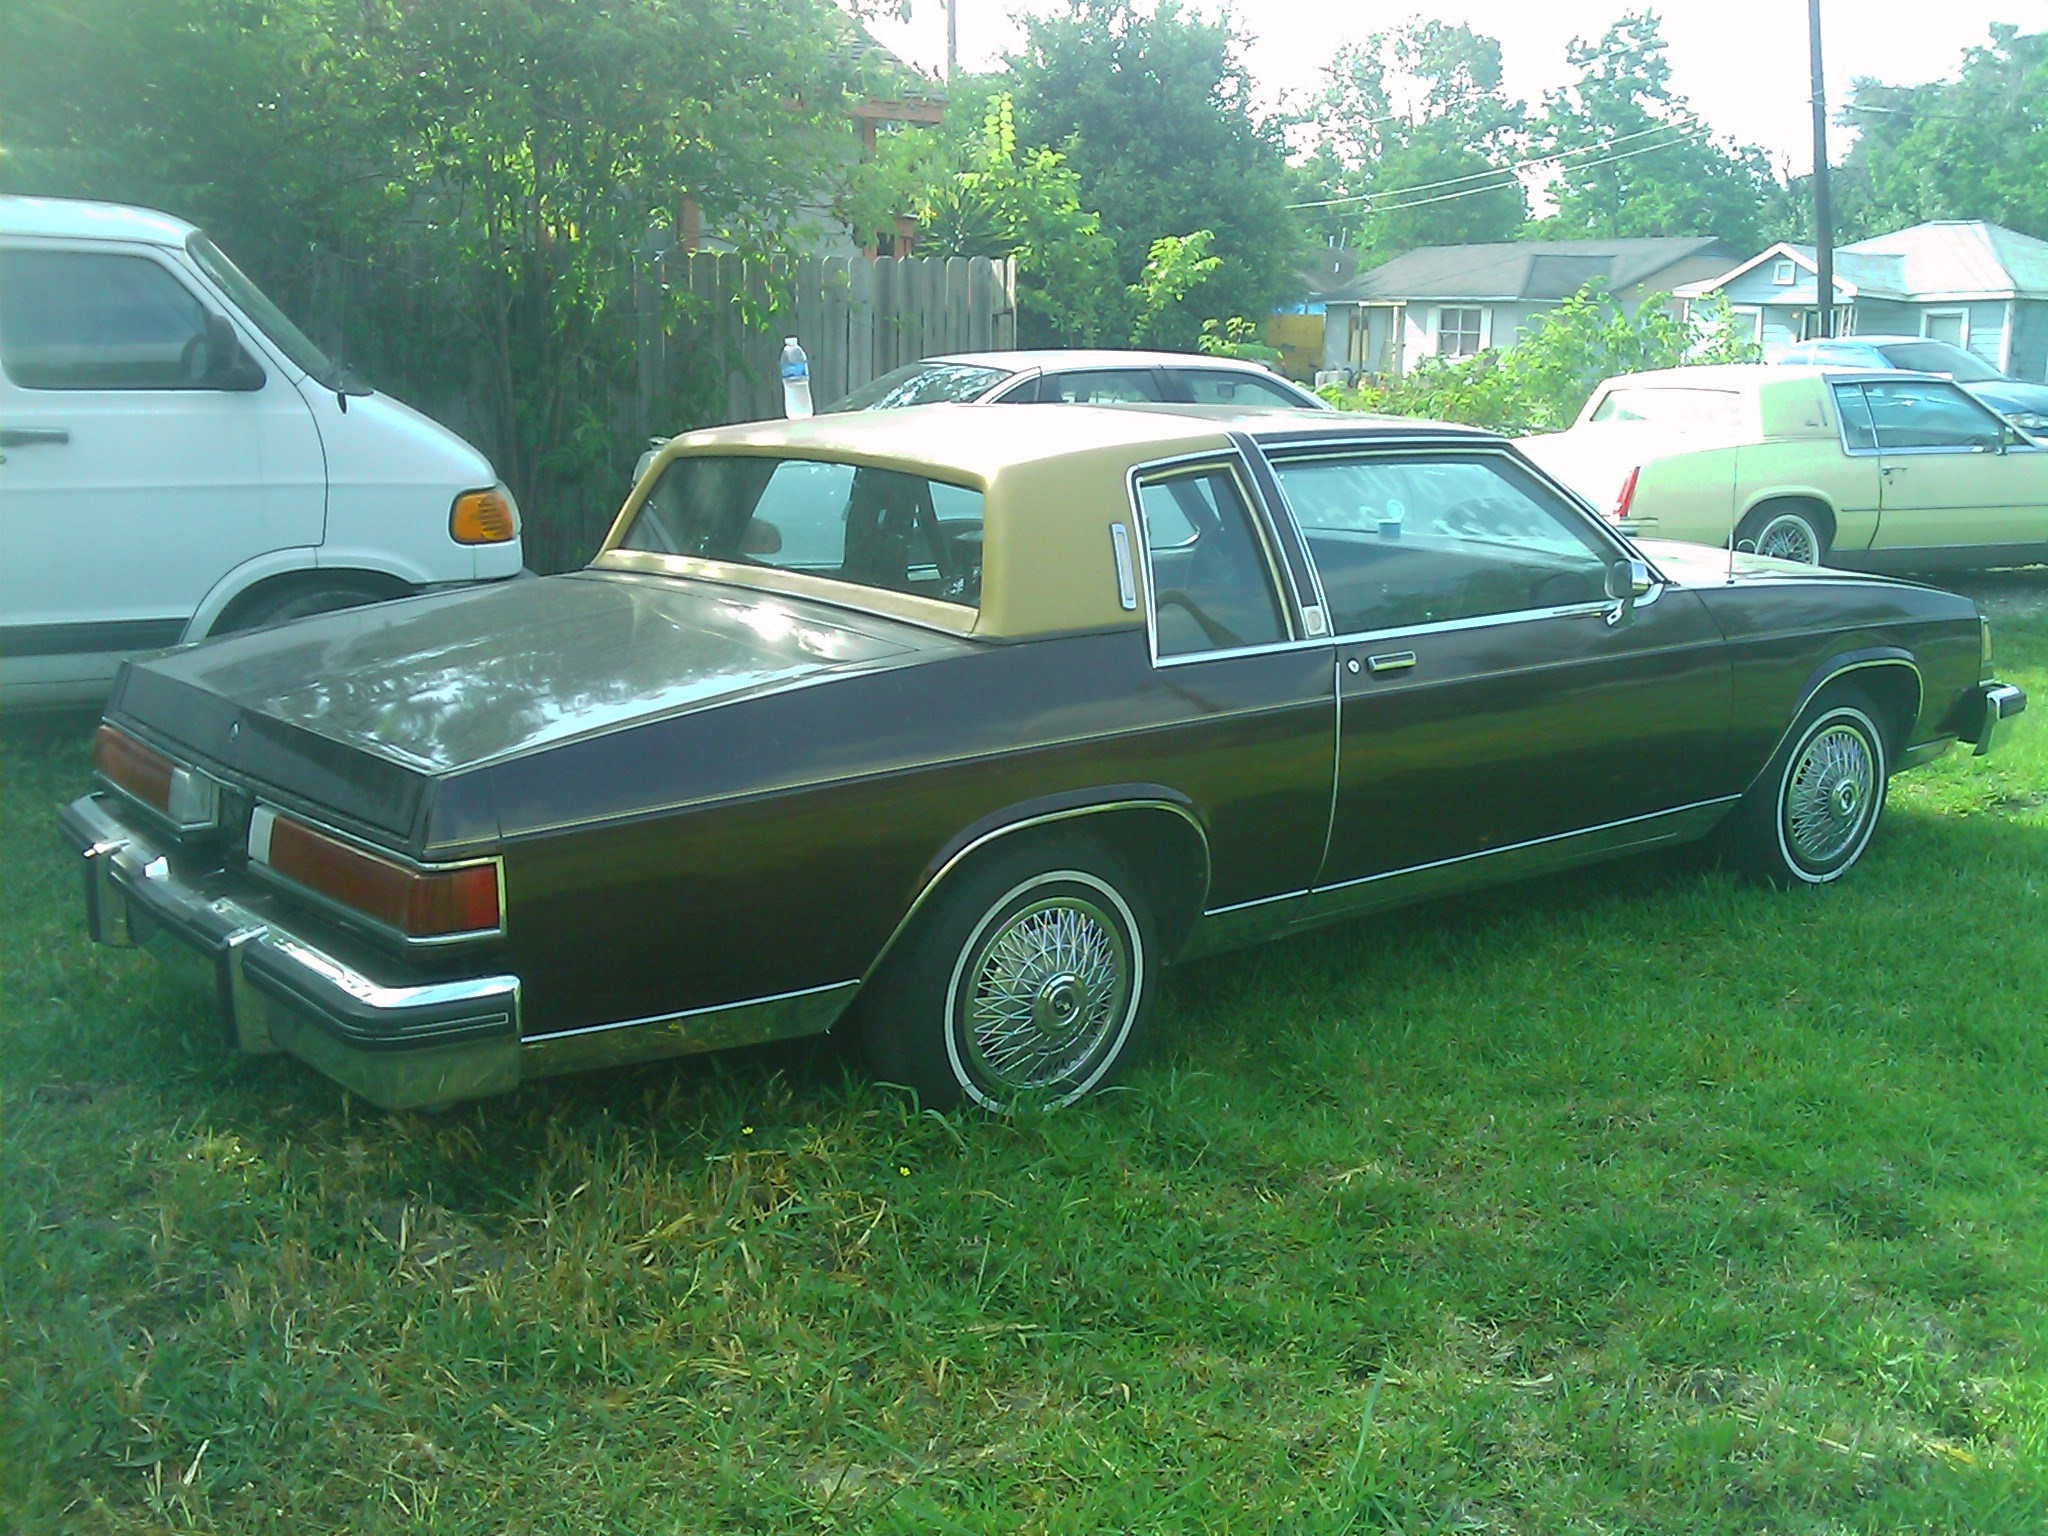 Yung_N_hOLDIN 1985 Buick LeSabre Specs, Photos